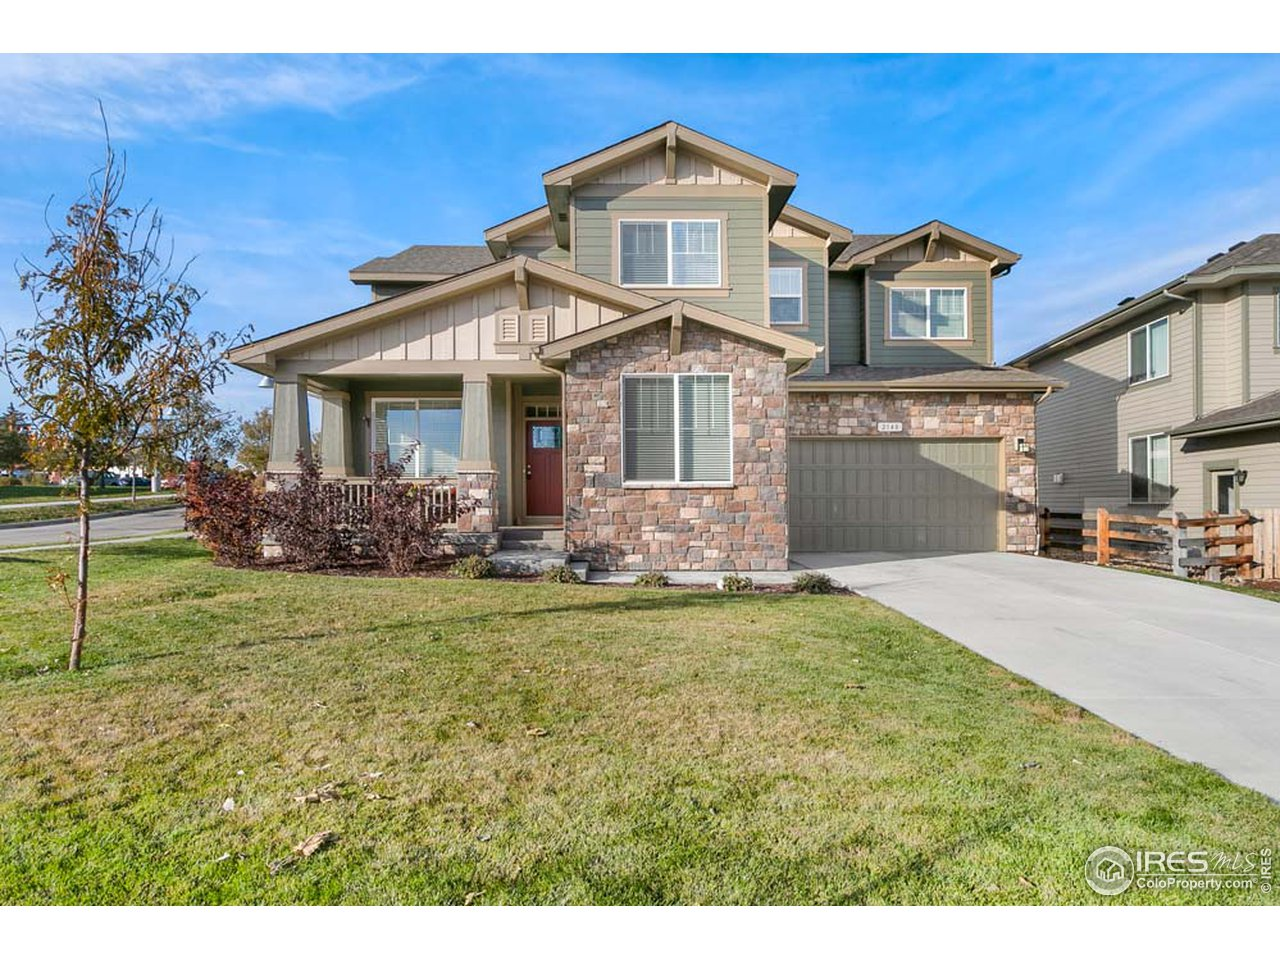 2148 Blackbird Dr, Fort Collins CO 80525